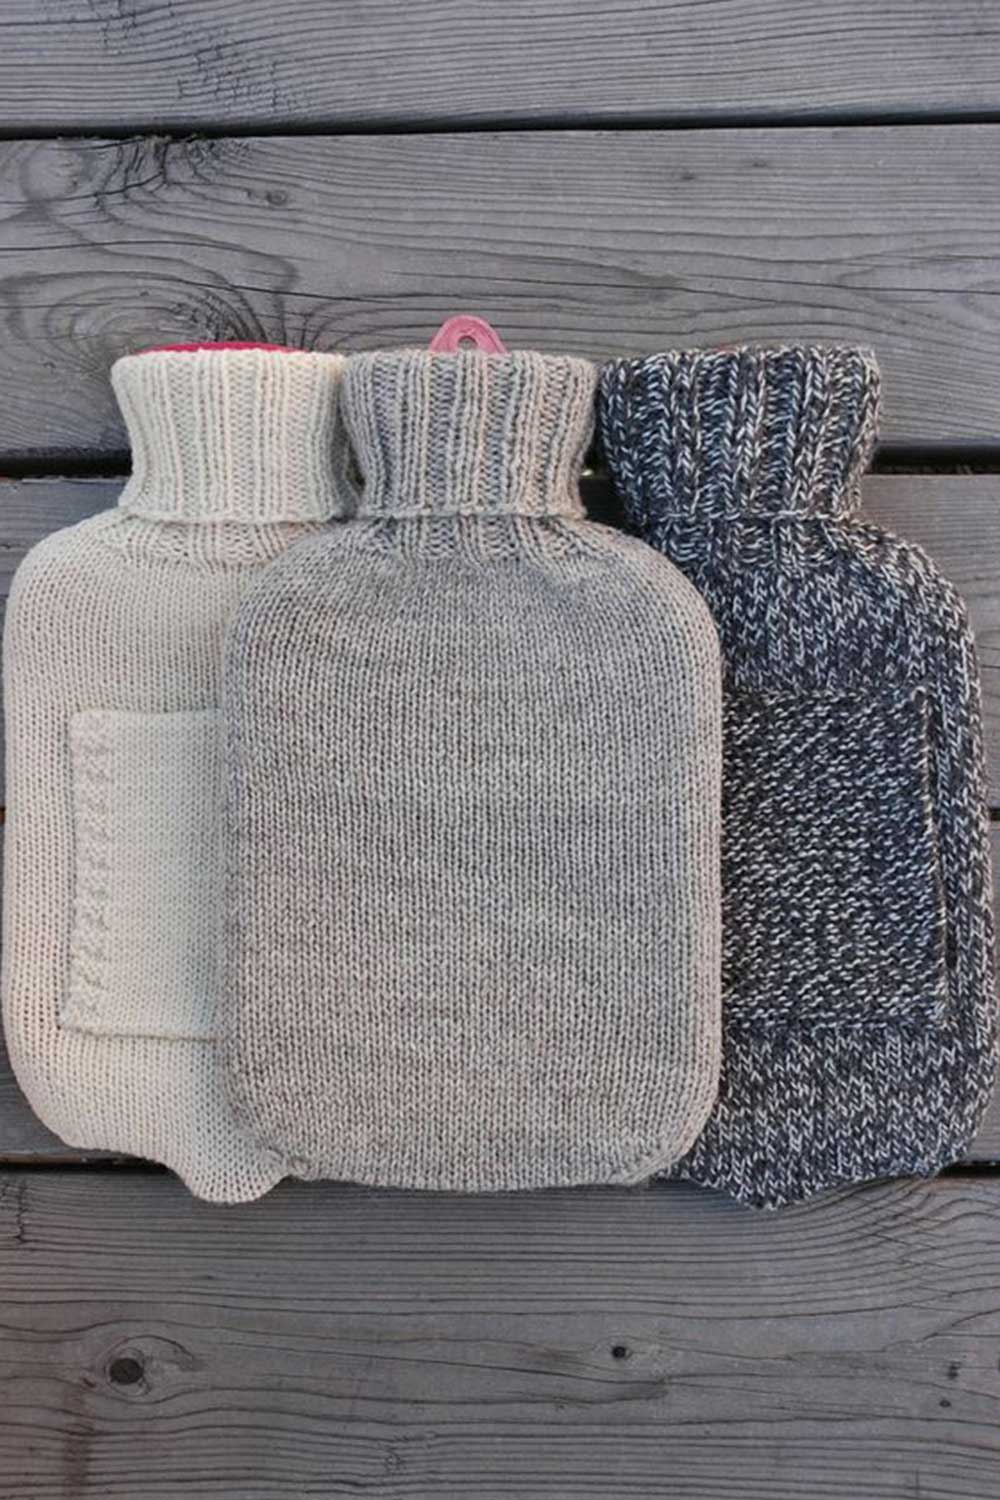 A comfy hot water bottle cover